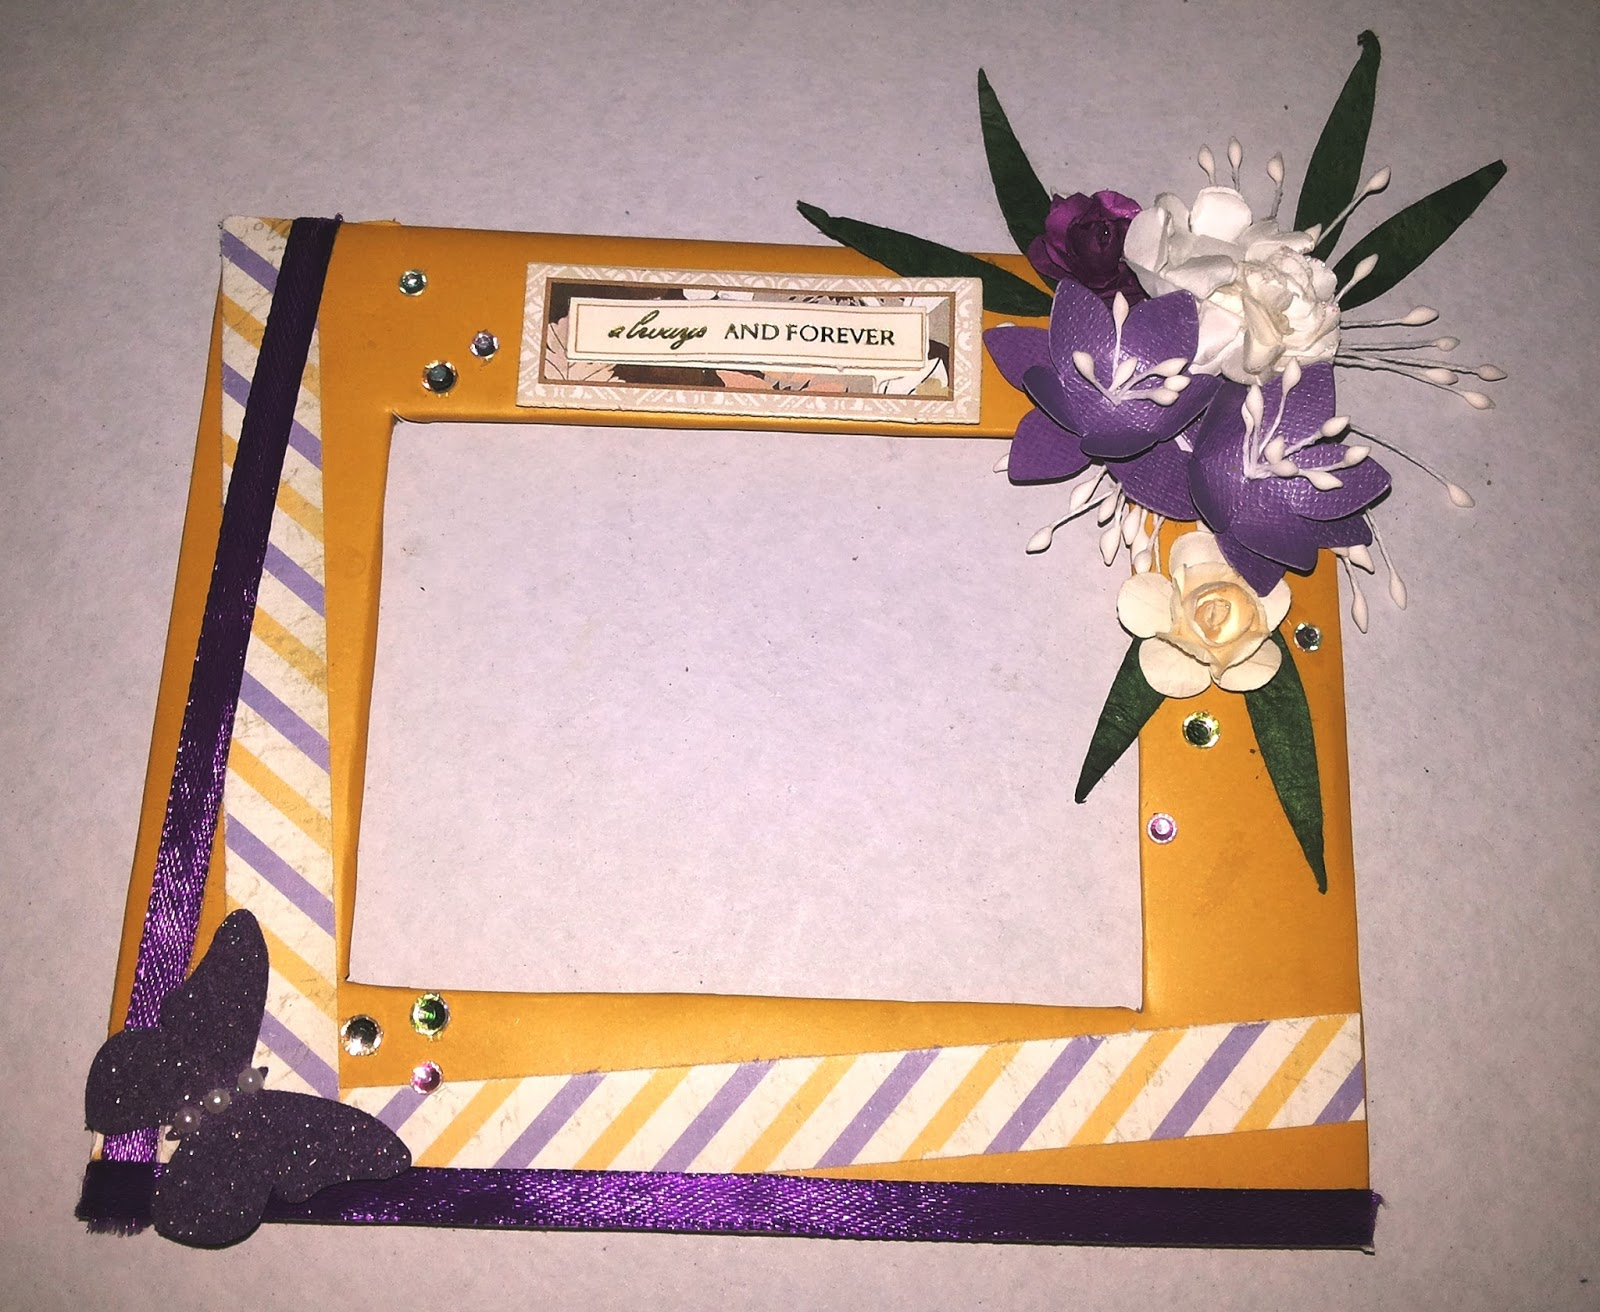 VREnchanted Color, Craft & more....: Cardboard Photo Frames- 2